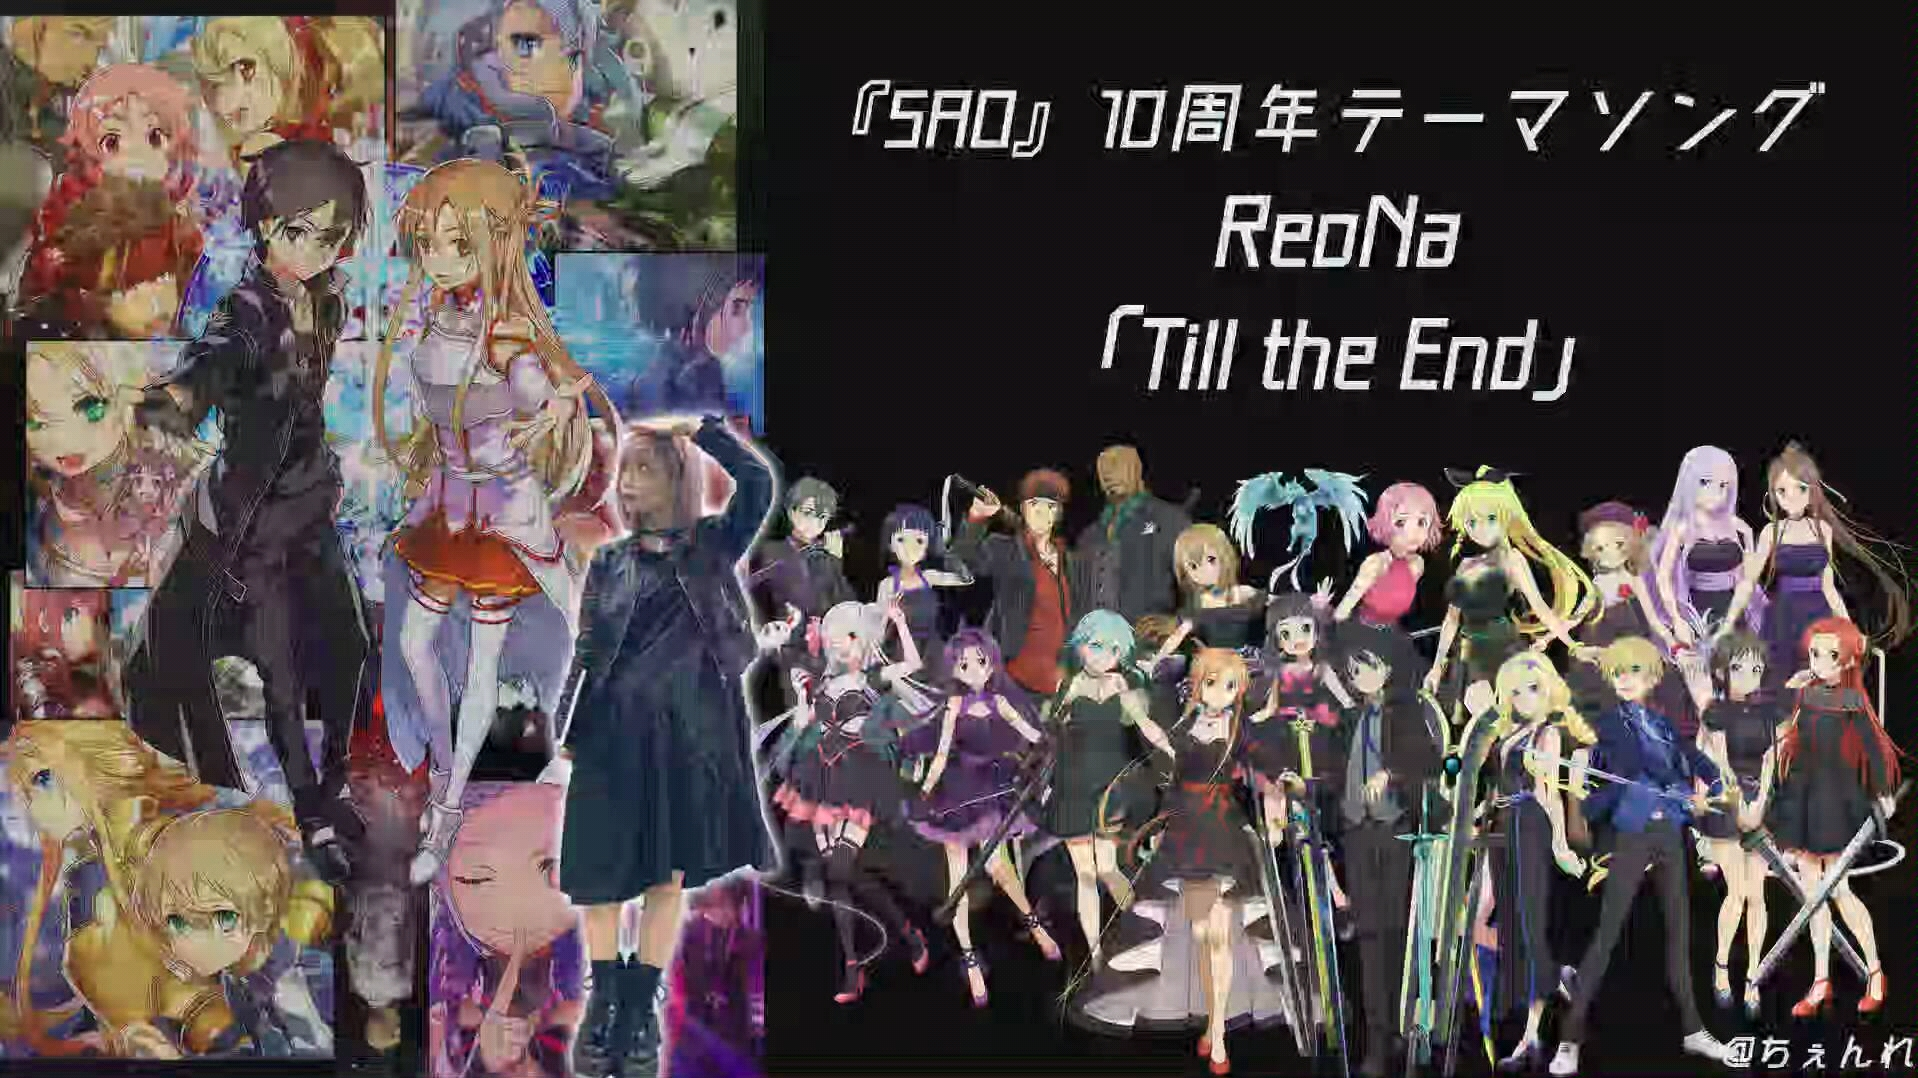 End the reona till